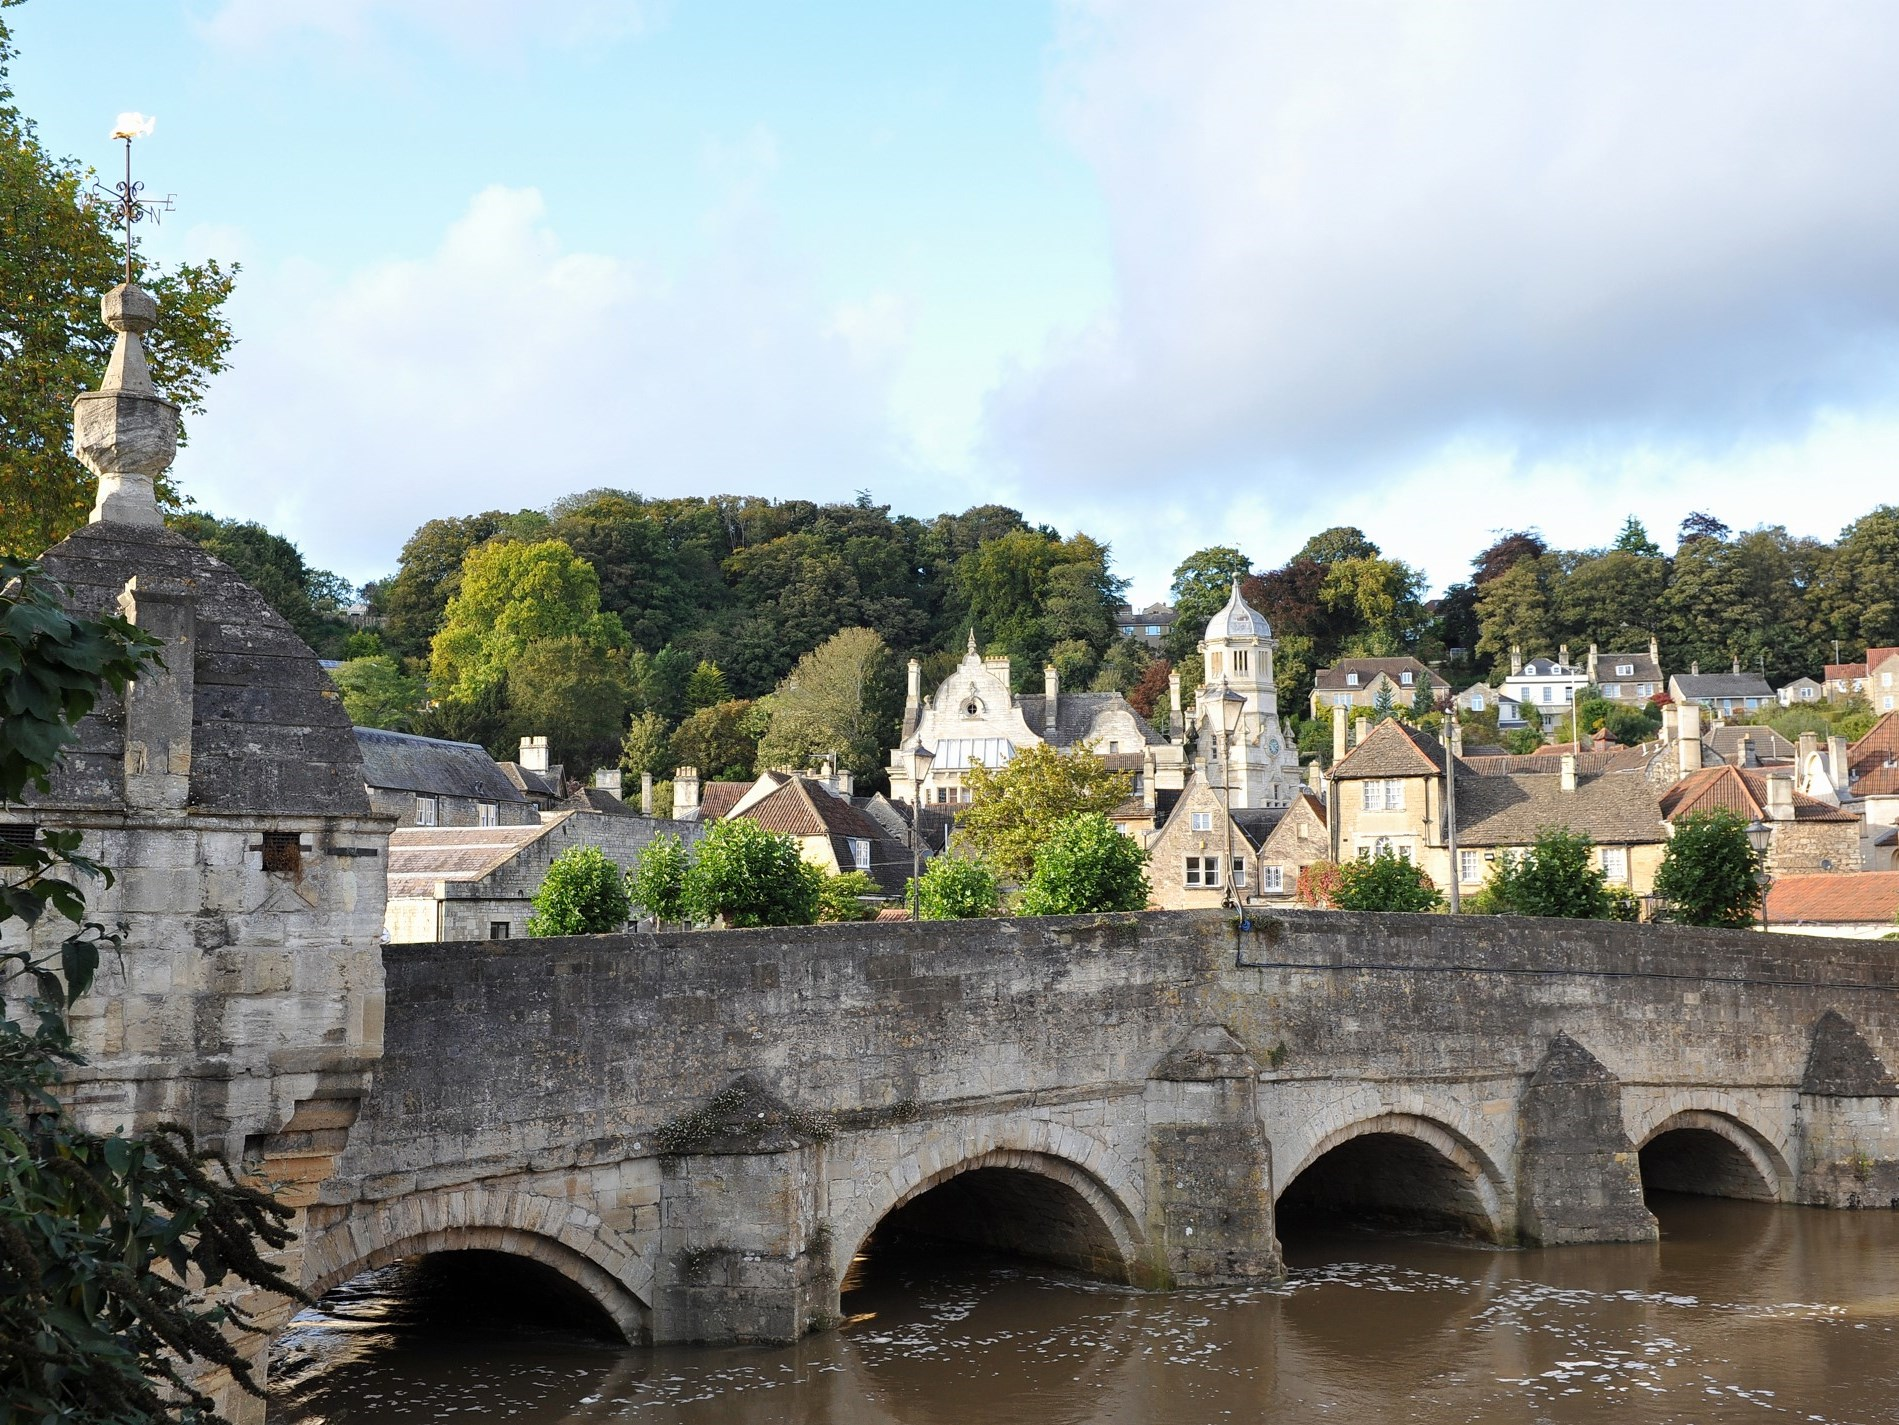 Stunning Bradford-on-Avon within walking distance